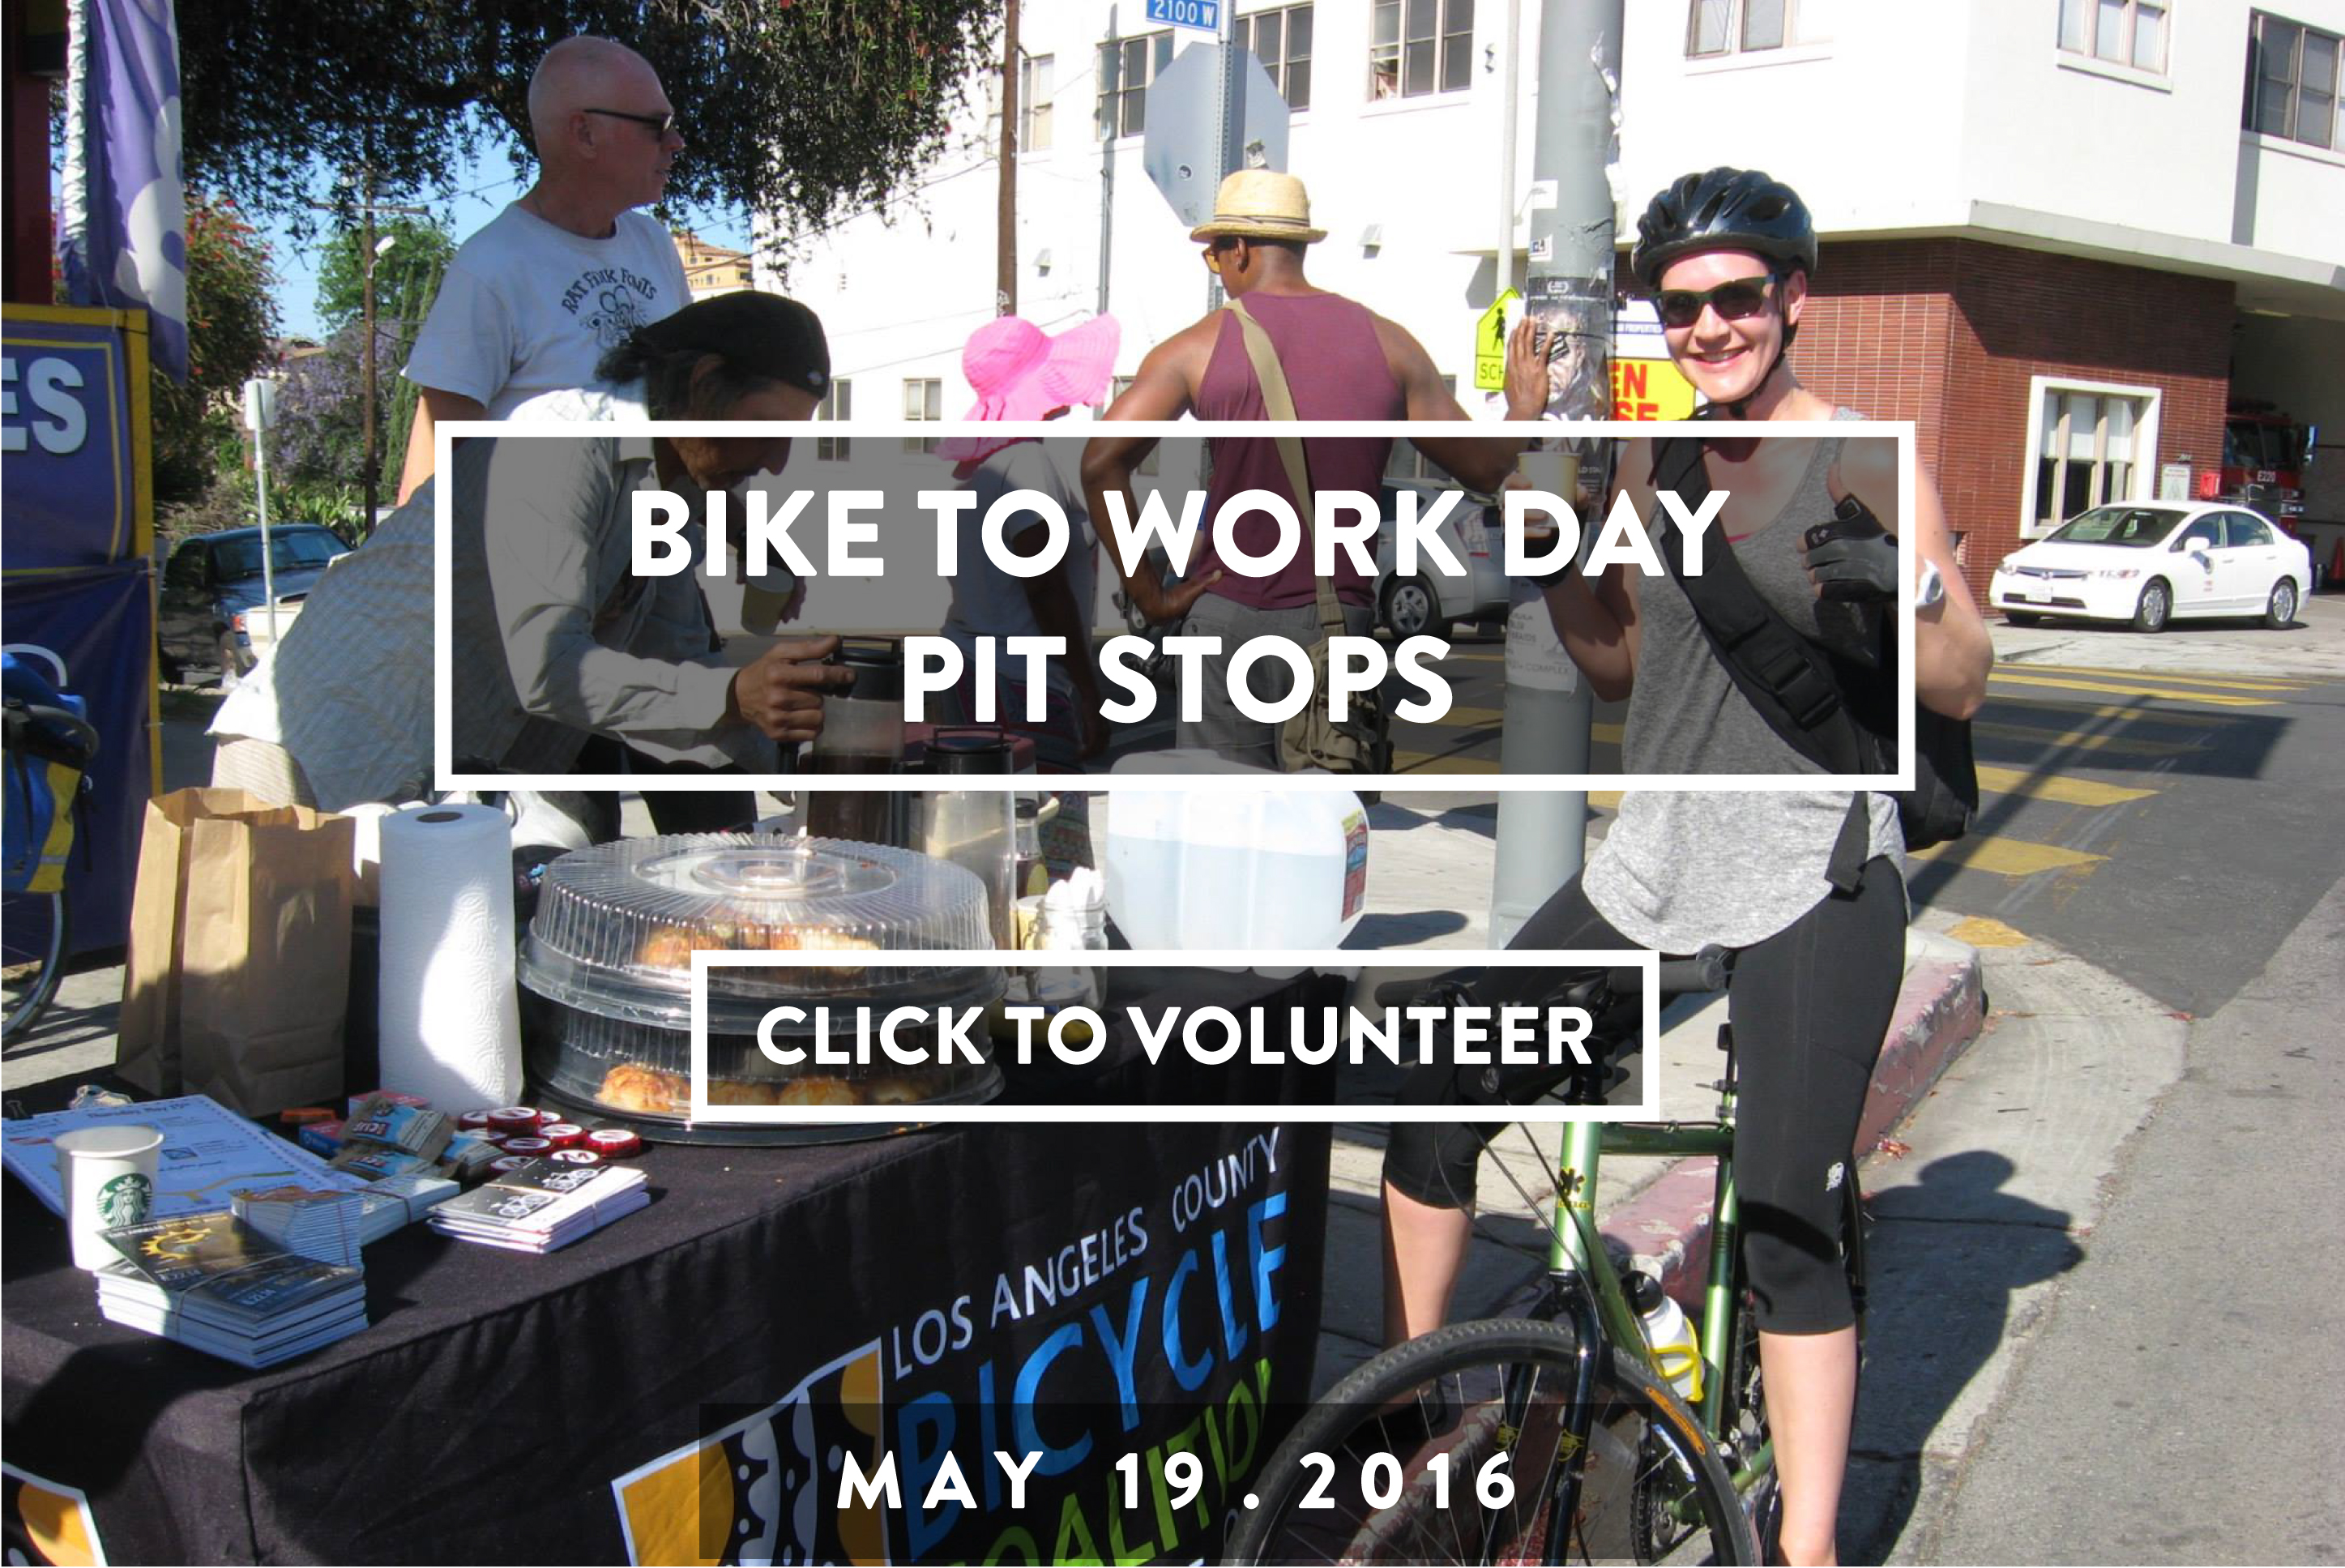 BTWD-PIT-STOP-GRAPHIC.jpg